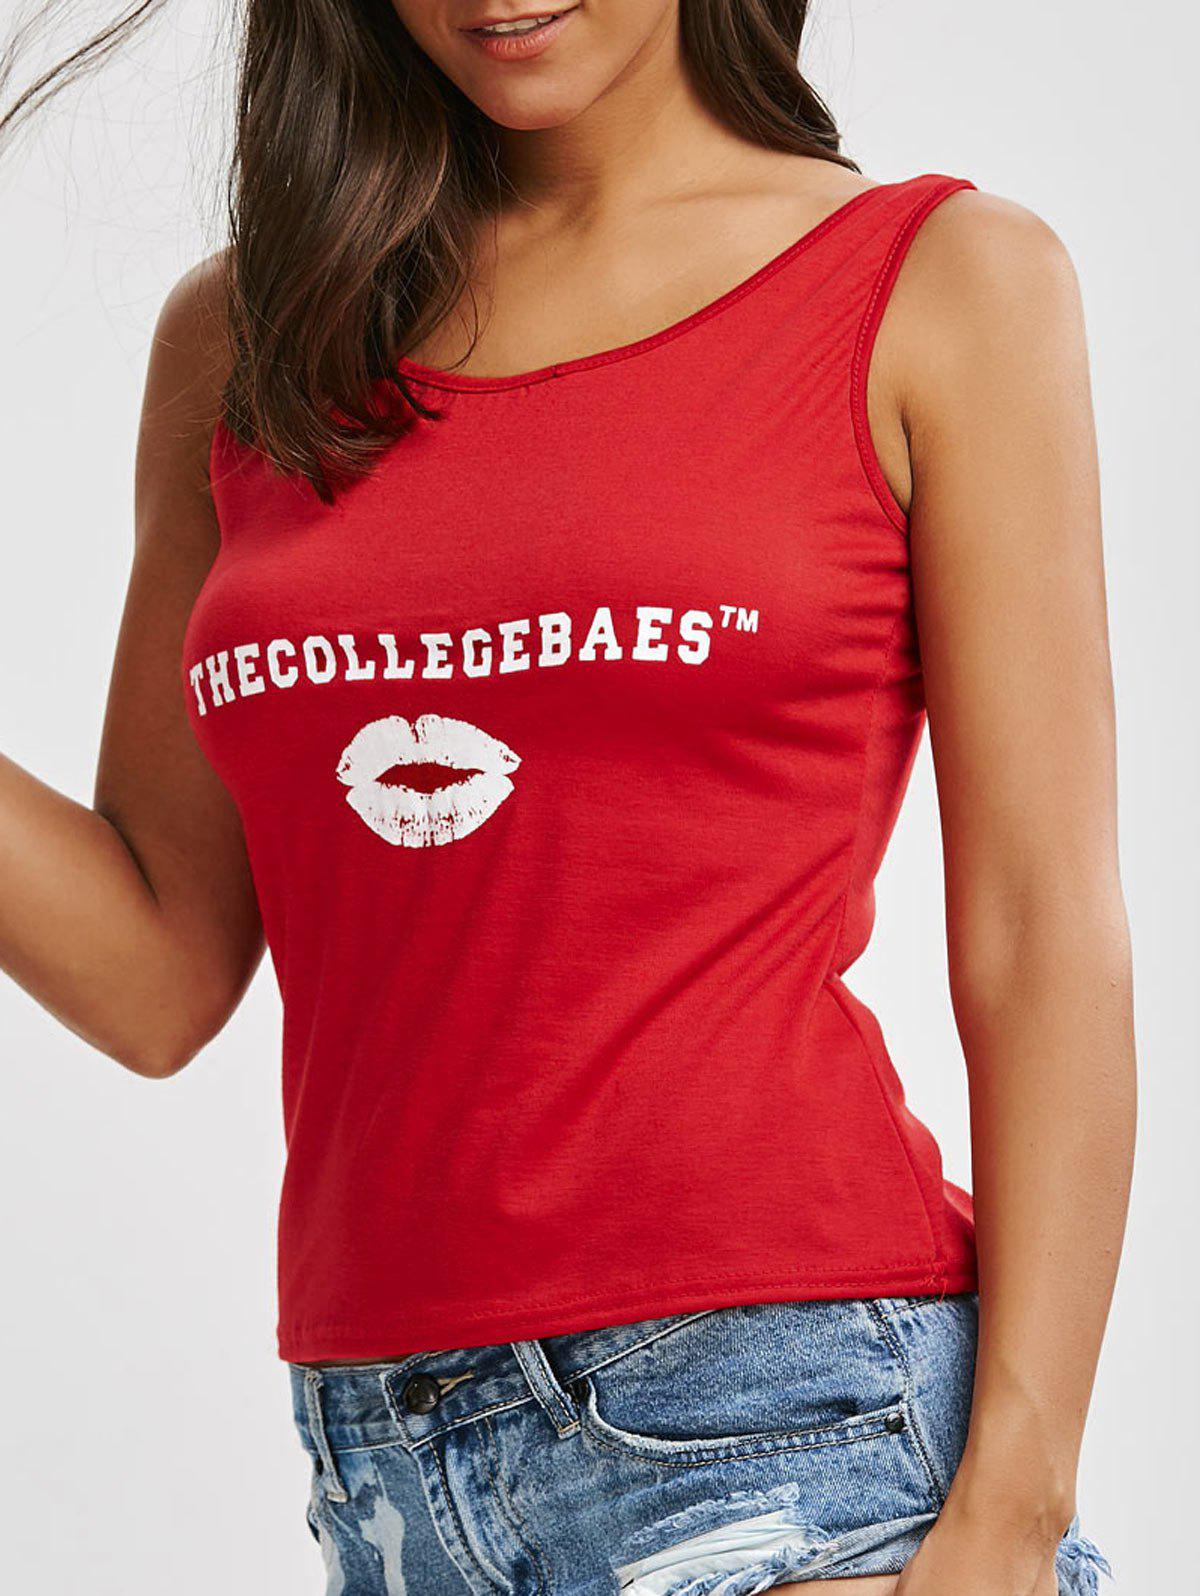 THE COLL EGEBSES Graphic Tank Top